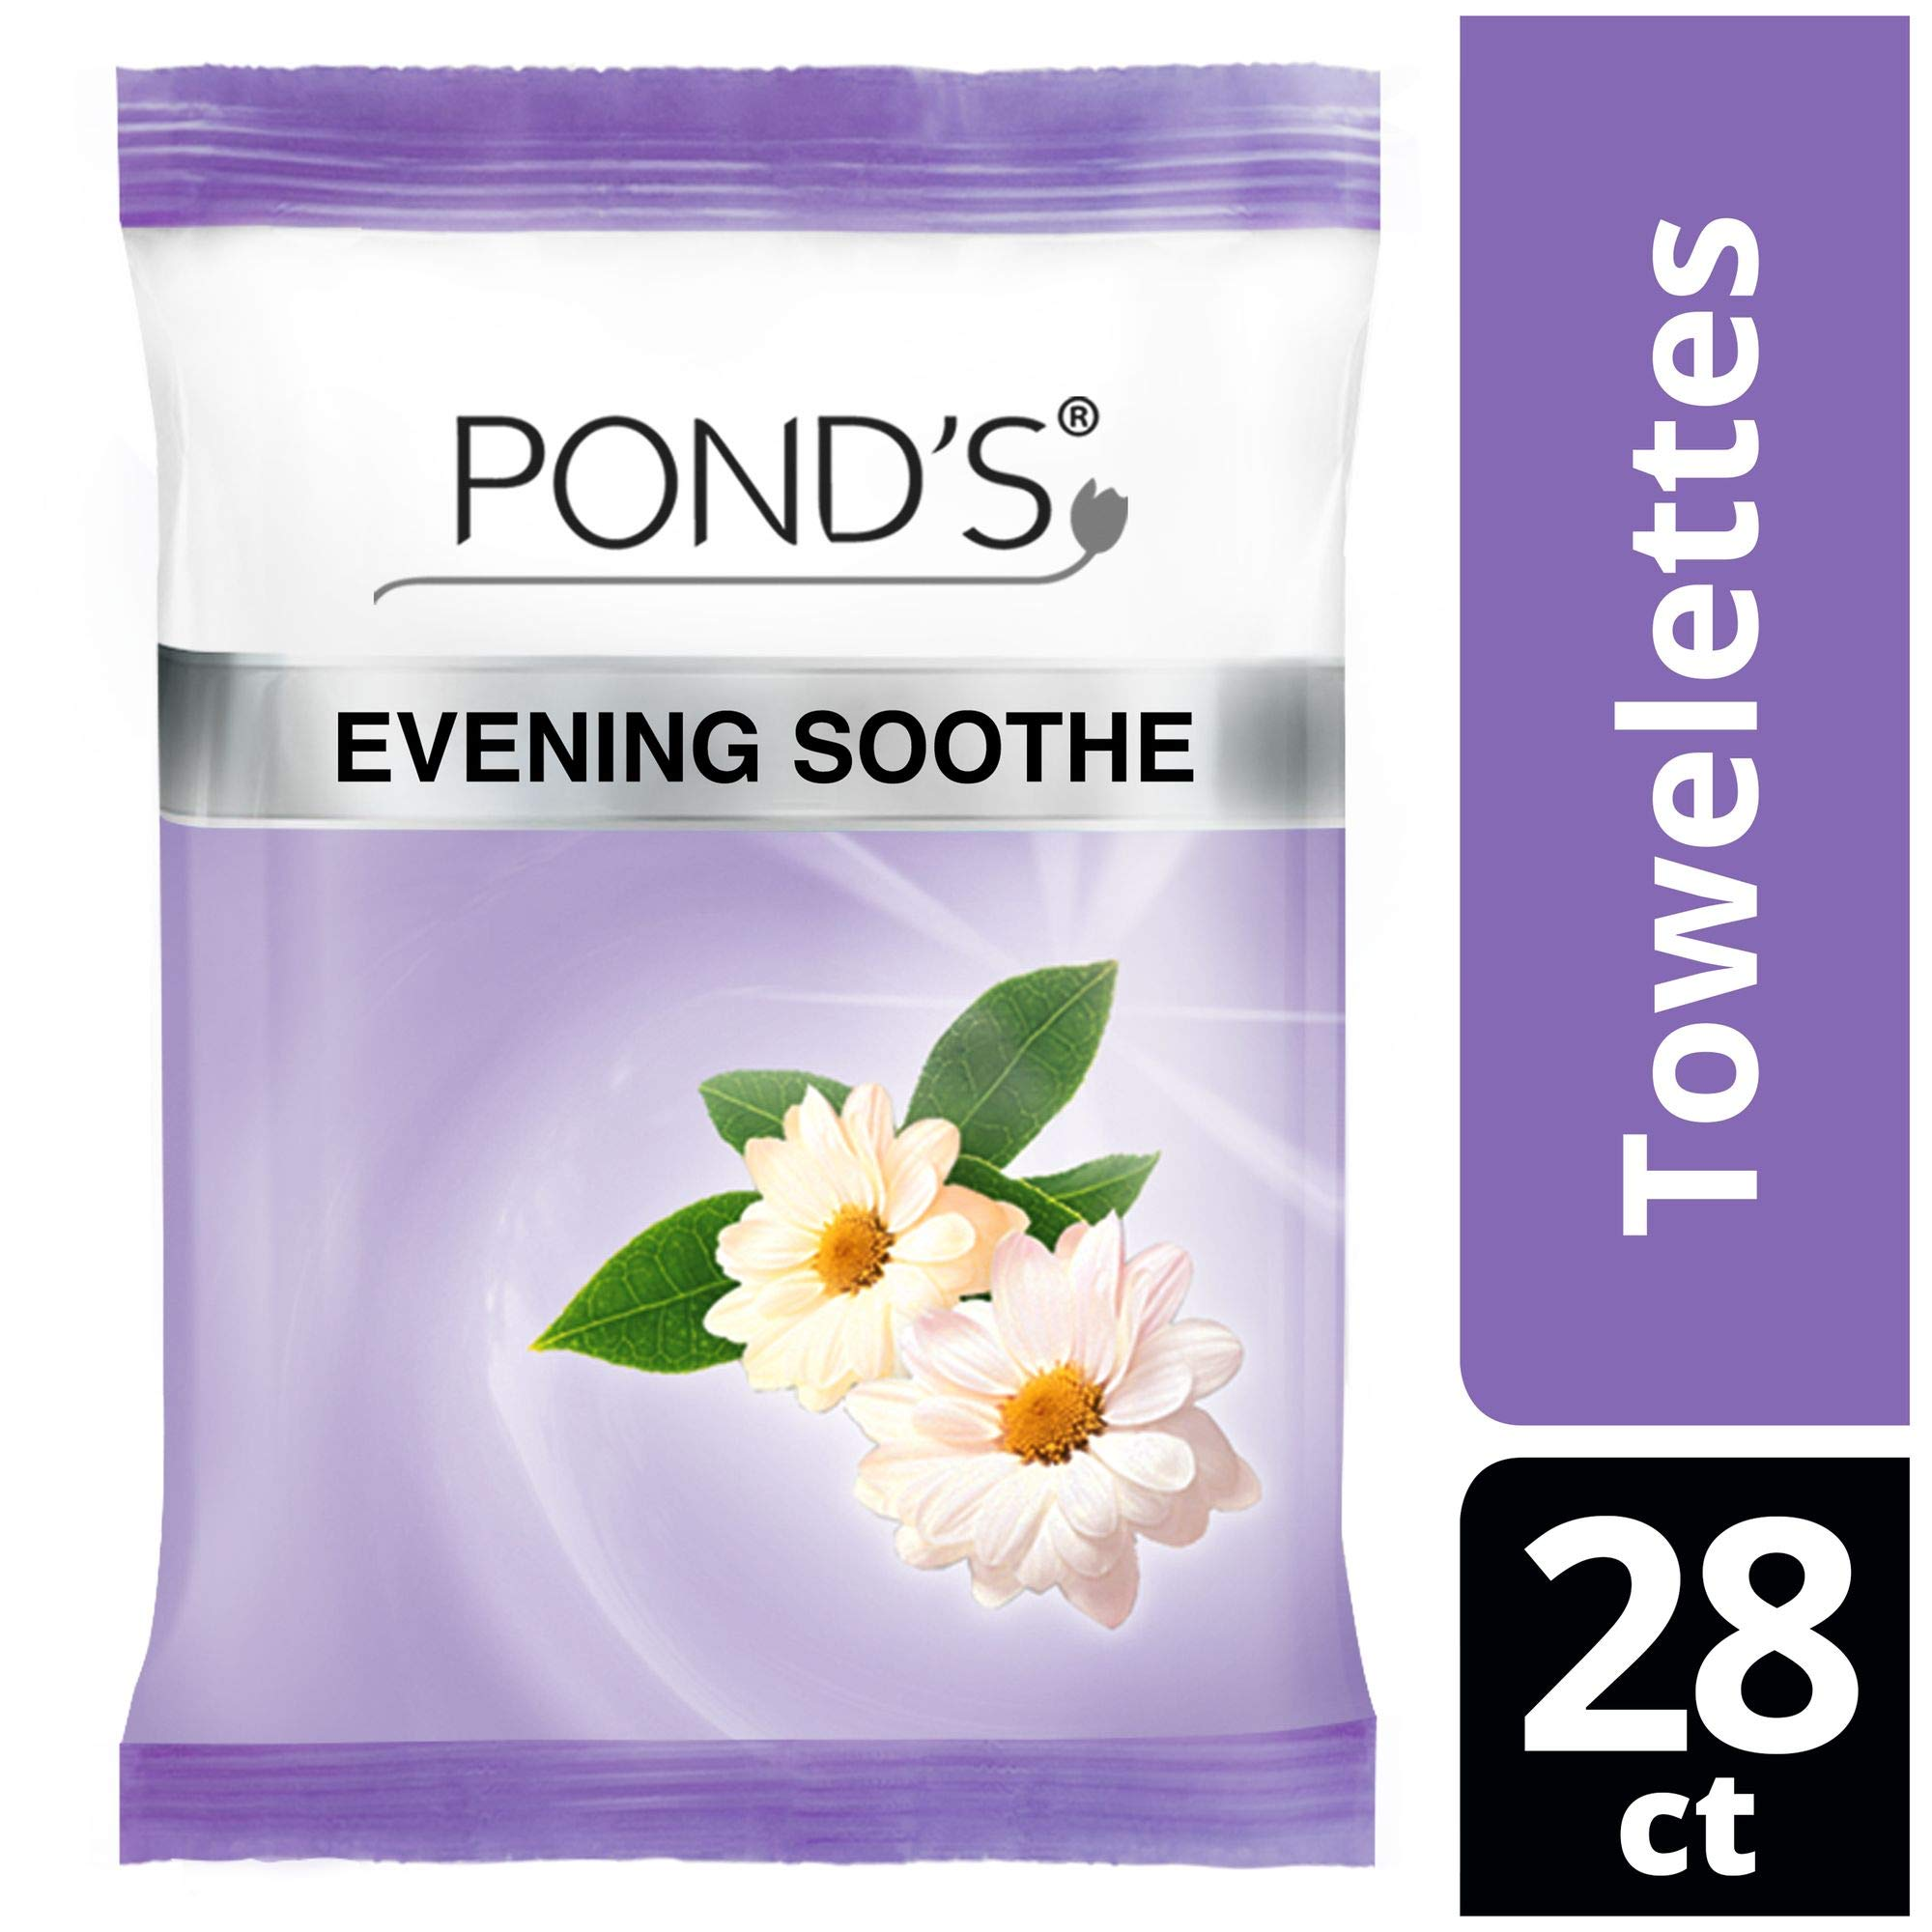 Ponds MoistureClean Makeup Remover Wipes, Evening Soothe, ...